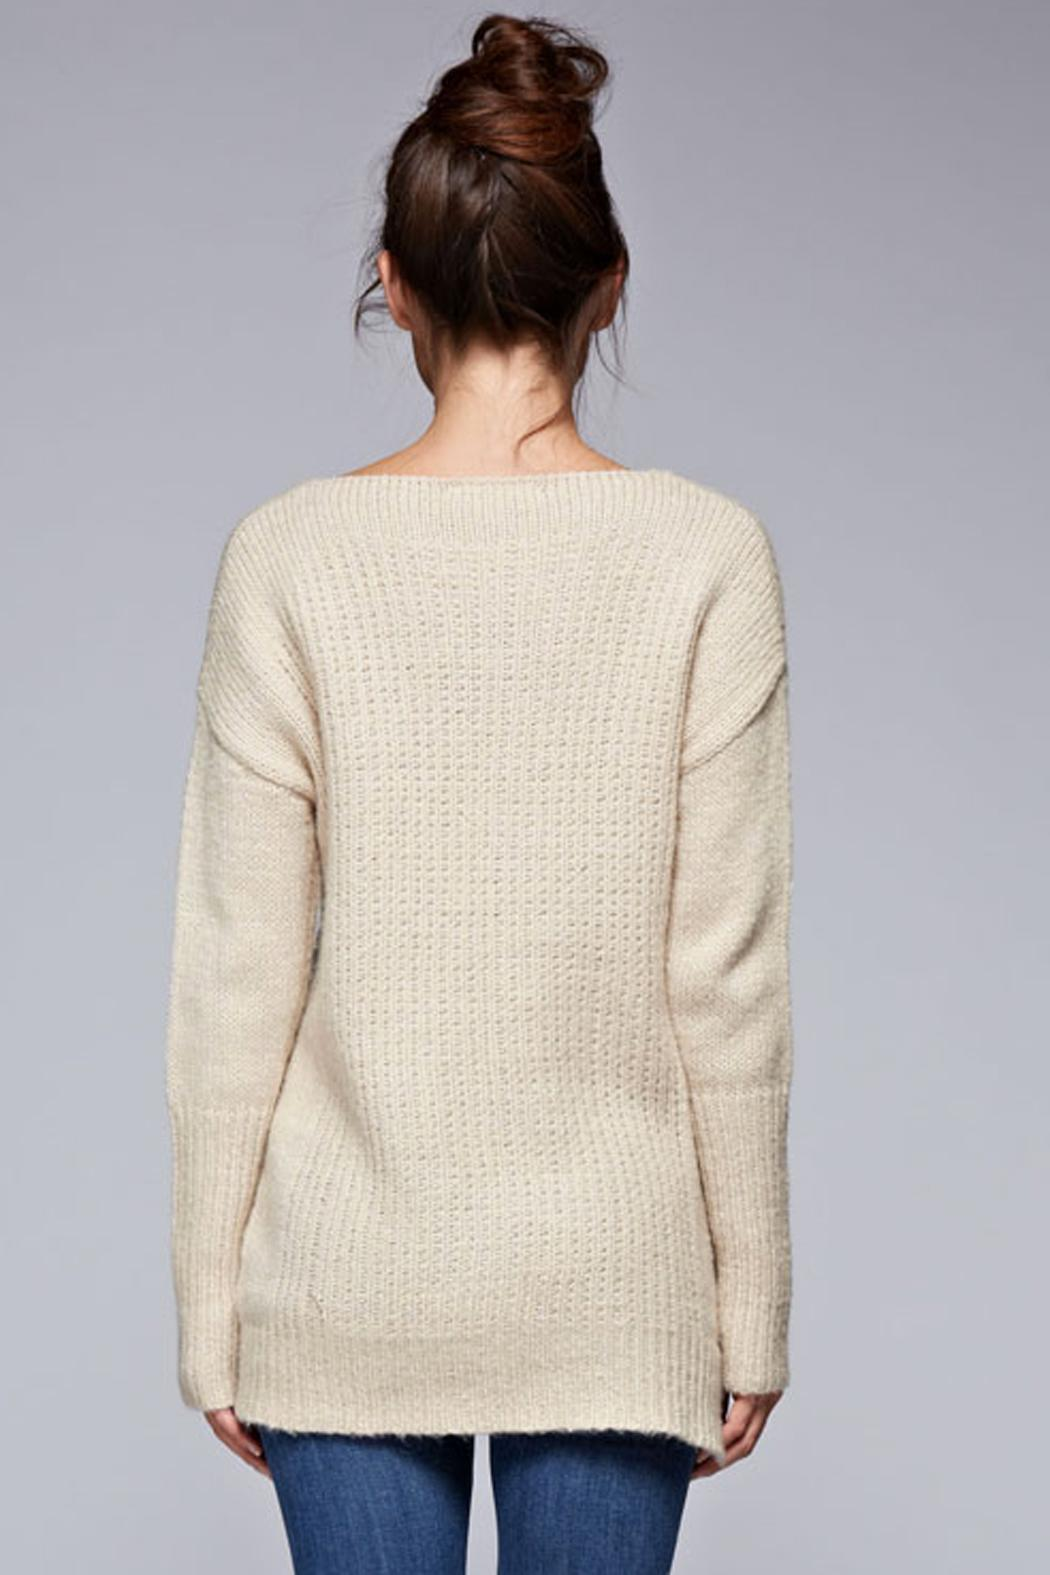 SNAZZY CHIC BOUTIQUE Beige Oversized Sweater - Back Cropped Image